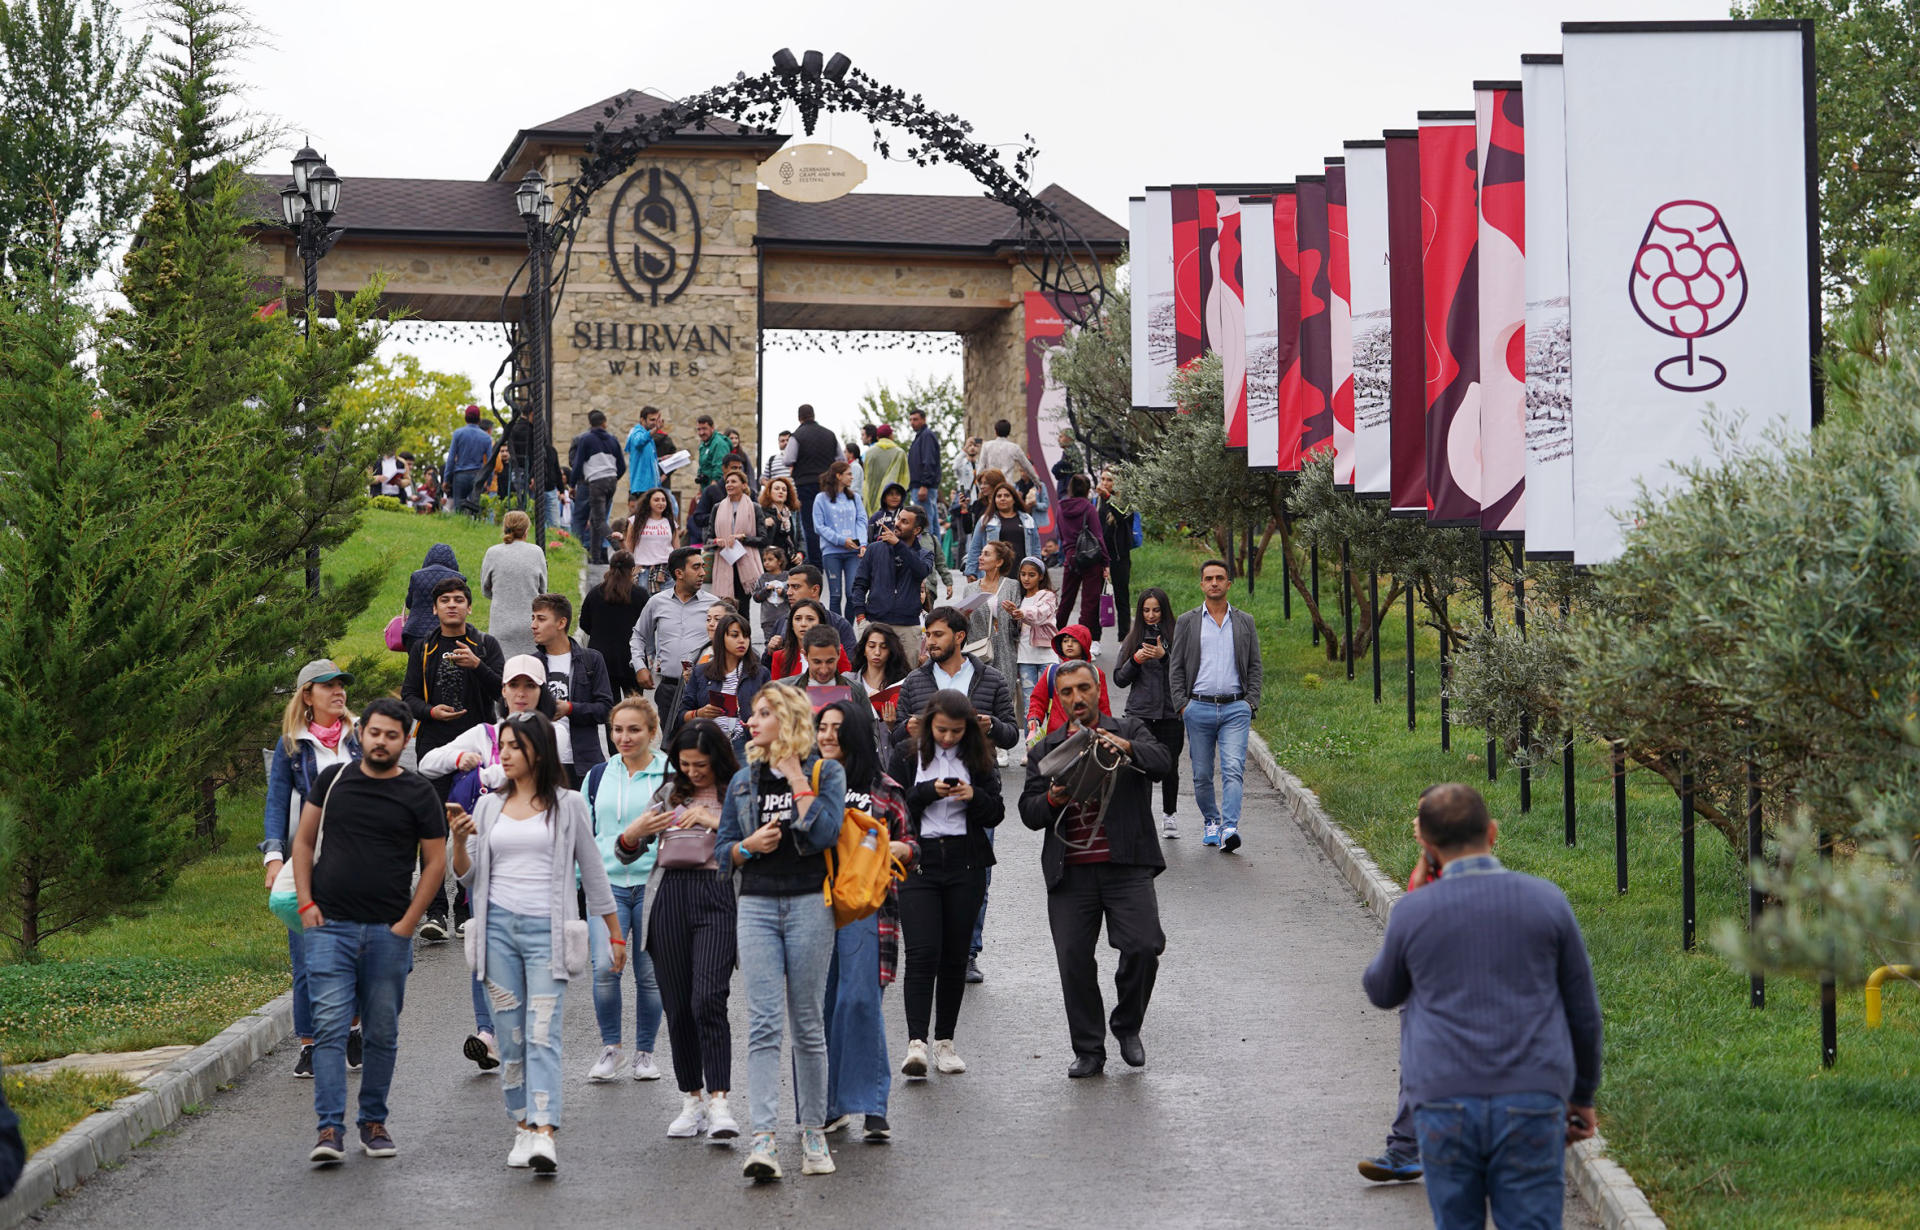 Vice-President of Heydar Aliyev Foundation Leyla Aliyeva views pavilions at First Grape and Wine Festival (PHOTOS)